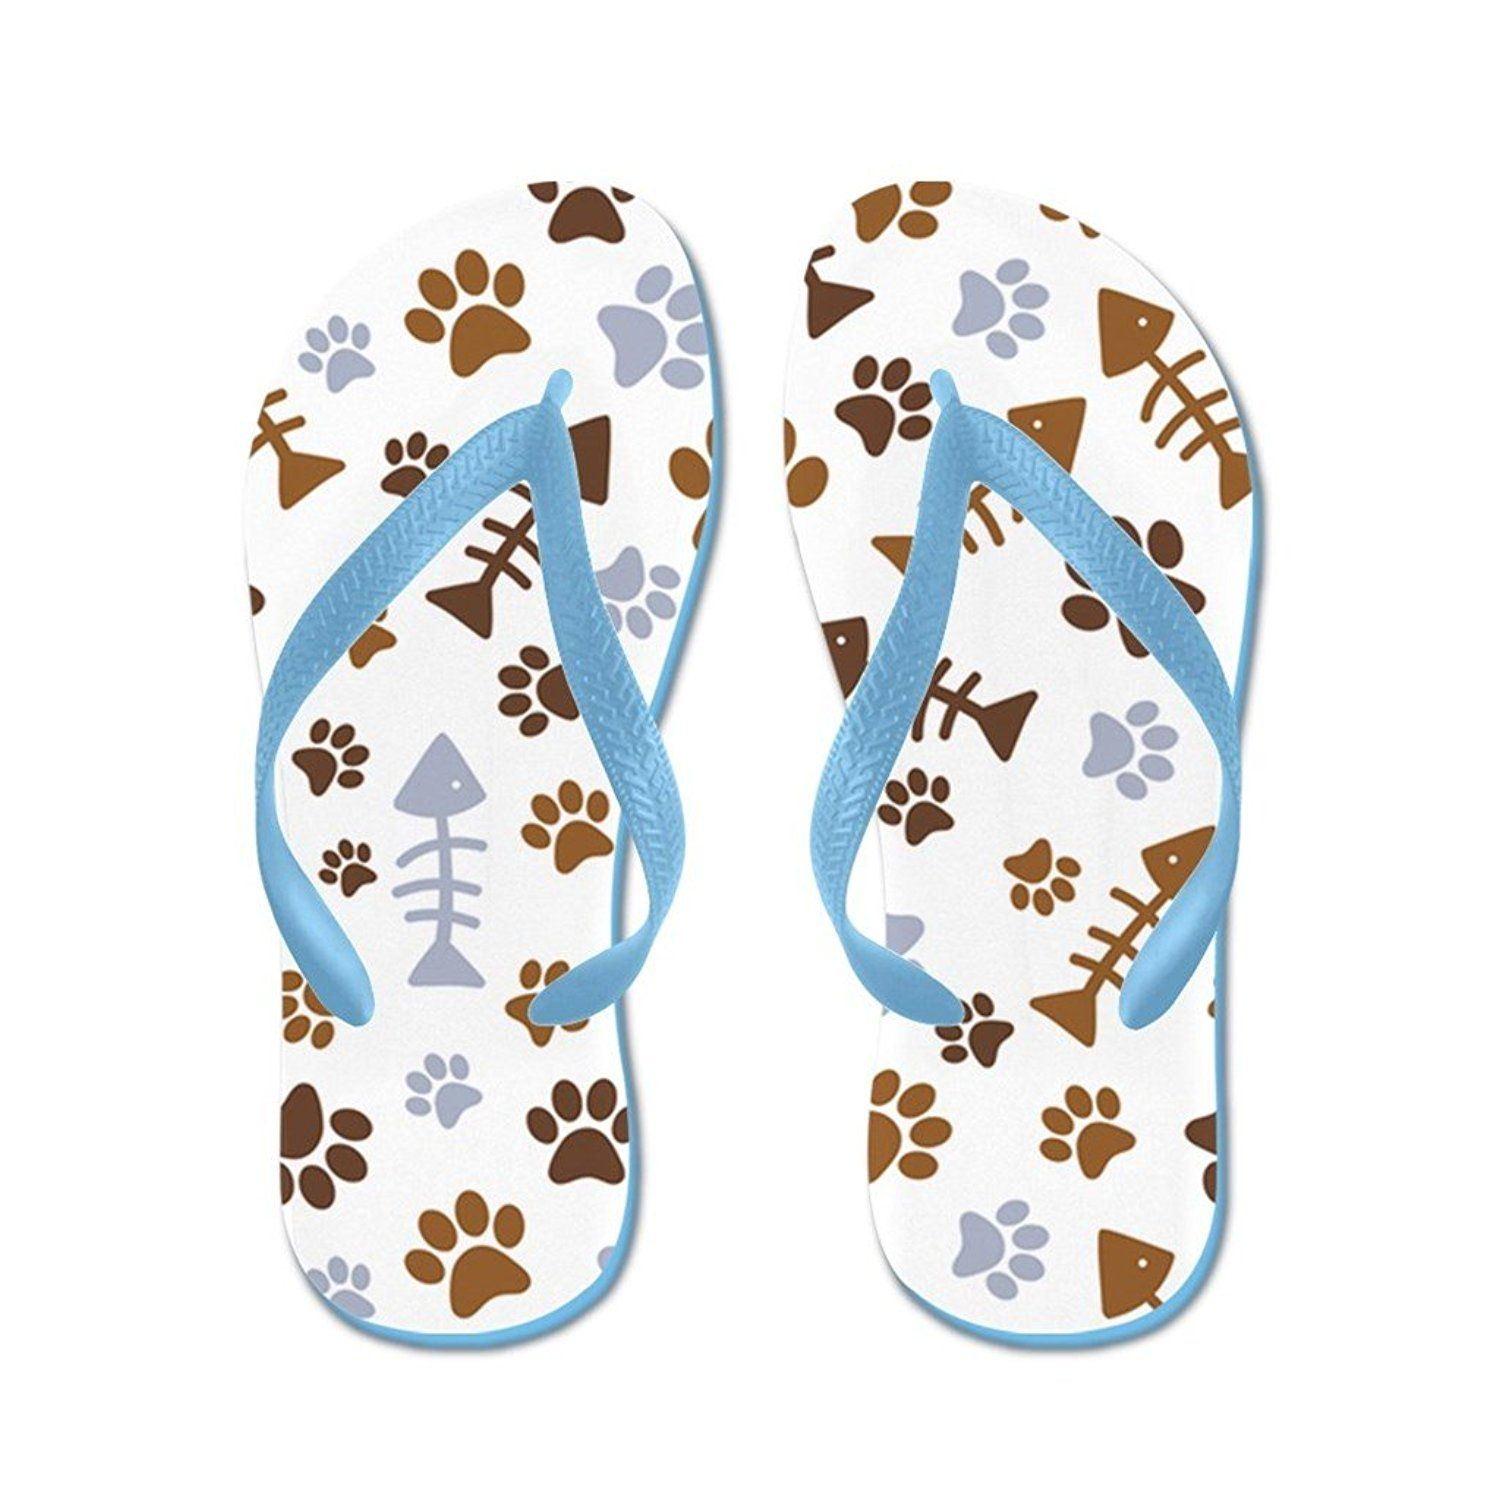 d6304401fb18 Lplpol Cat Paw Prints Pattern Cartoon Print Flip Flops for Kids and Adult  Unisex Beach Sandals Pool Shoes Party Slippers * To view further for this  item, ...